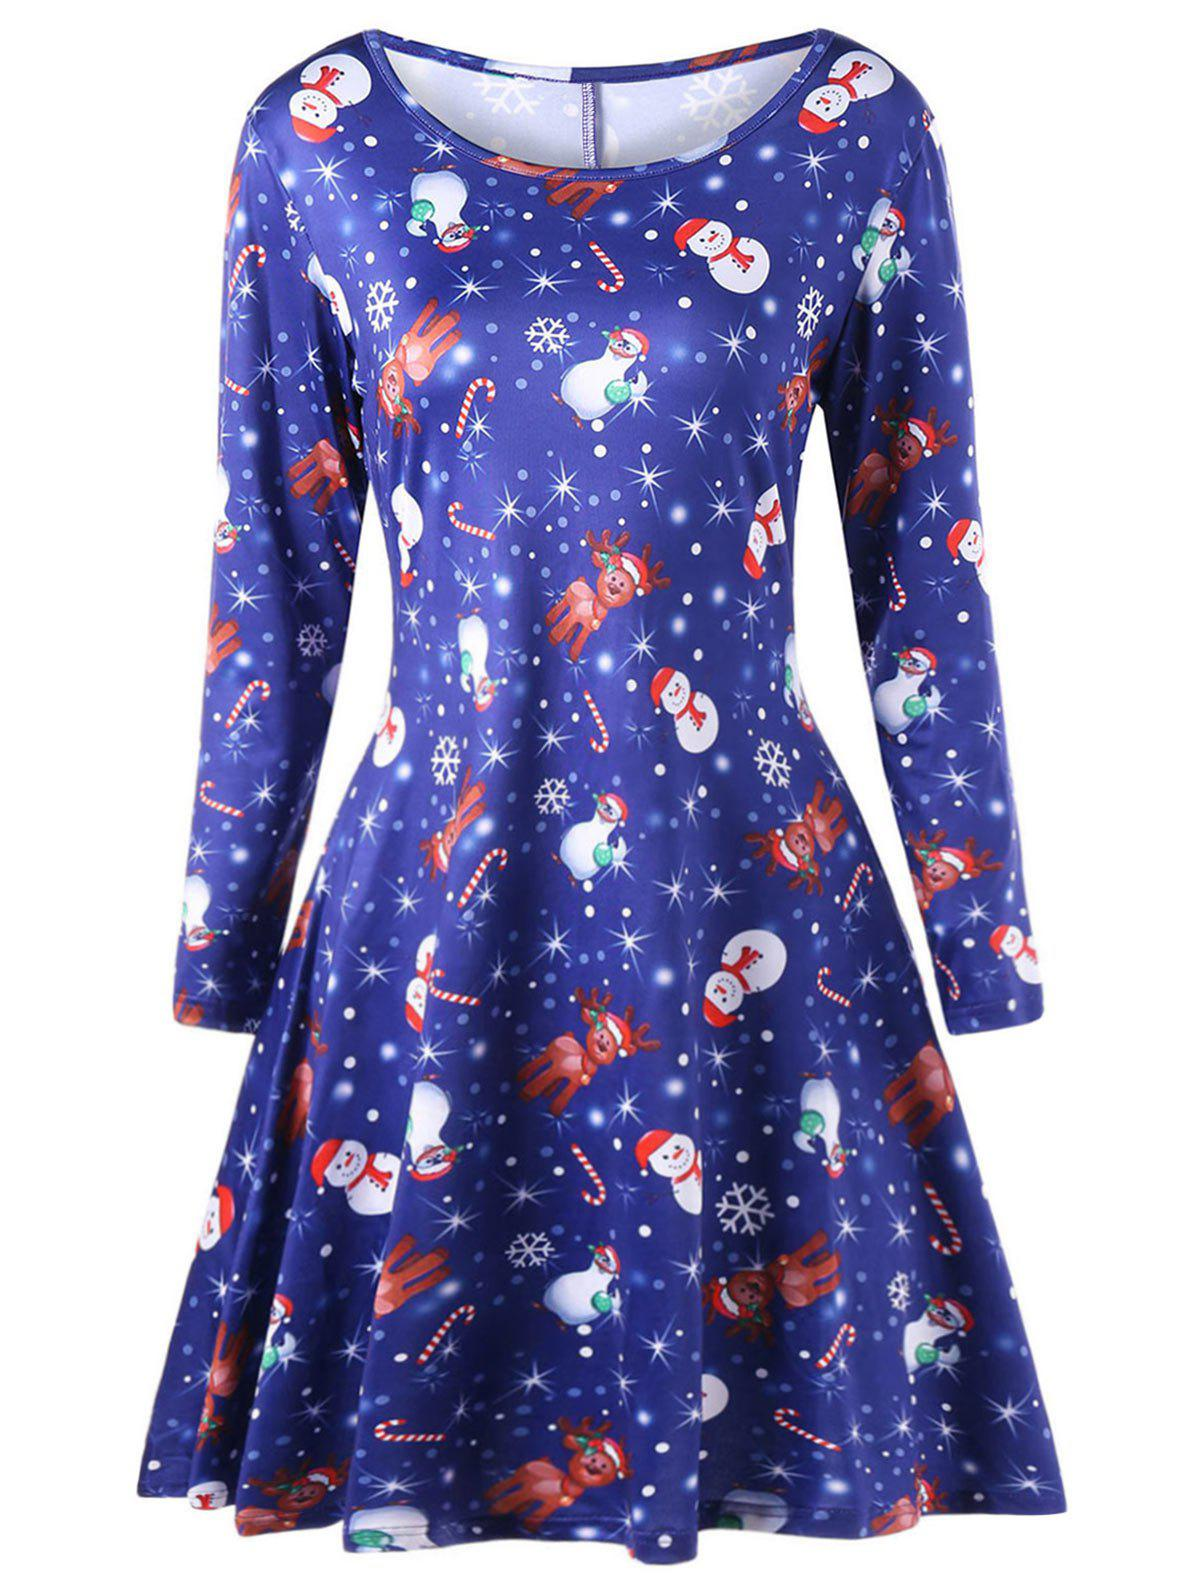 Plus Size Elk Print Long Sleeve Christmas Skater DressWOMEN<br><br>Size: 3XL; Color: BLUE; Style: Casual; Material: Cotton,Spandex; Silhouette: A-Line; Dresses Length: Mid-Calf; Neckline: Scoop Neck; Sleeve Length: Long Sleeves; Pattern Type: Cartoon; With Belt: No; Season: Fall,Spring,Winter; Weight: 0.3000kg; Package Contents: 1 x Dress;